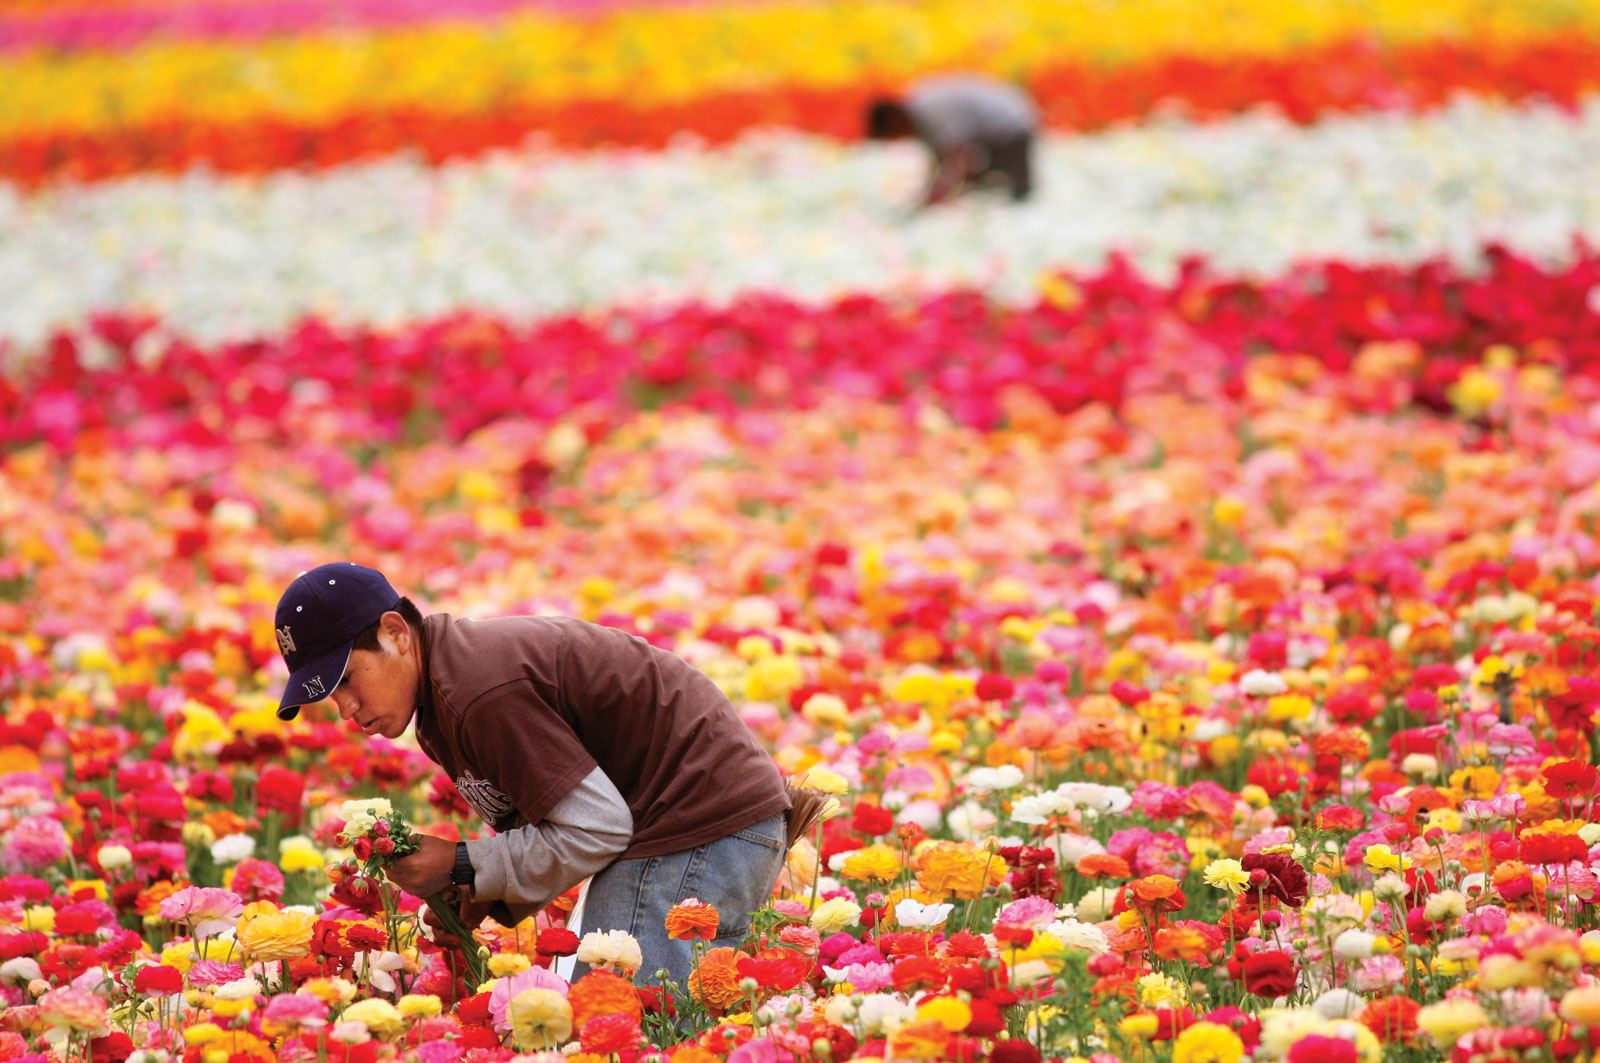 Uzbekistan to allocate funds for developing floriculture